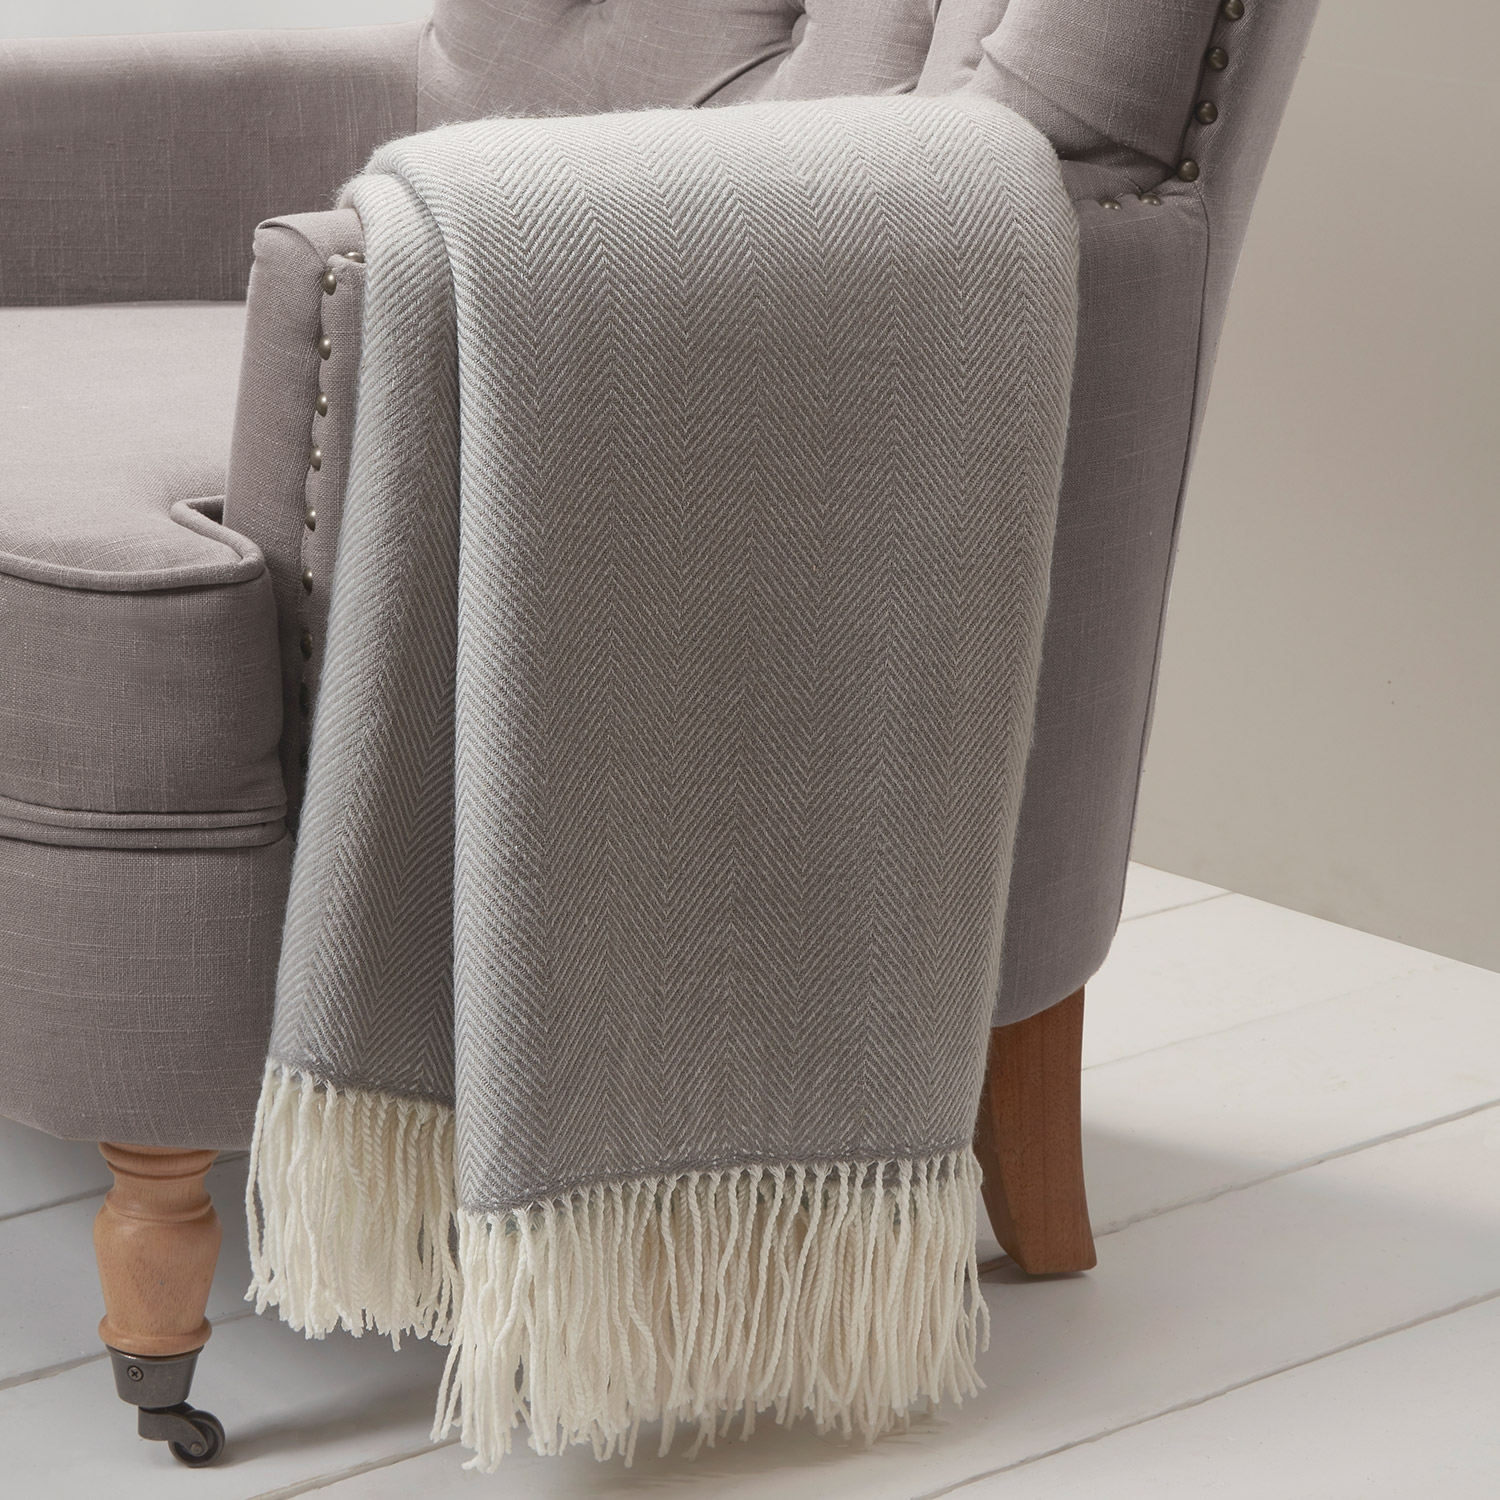 Blair Silver Herringbone Throw